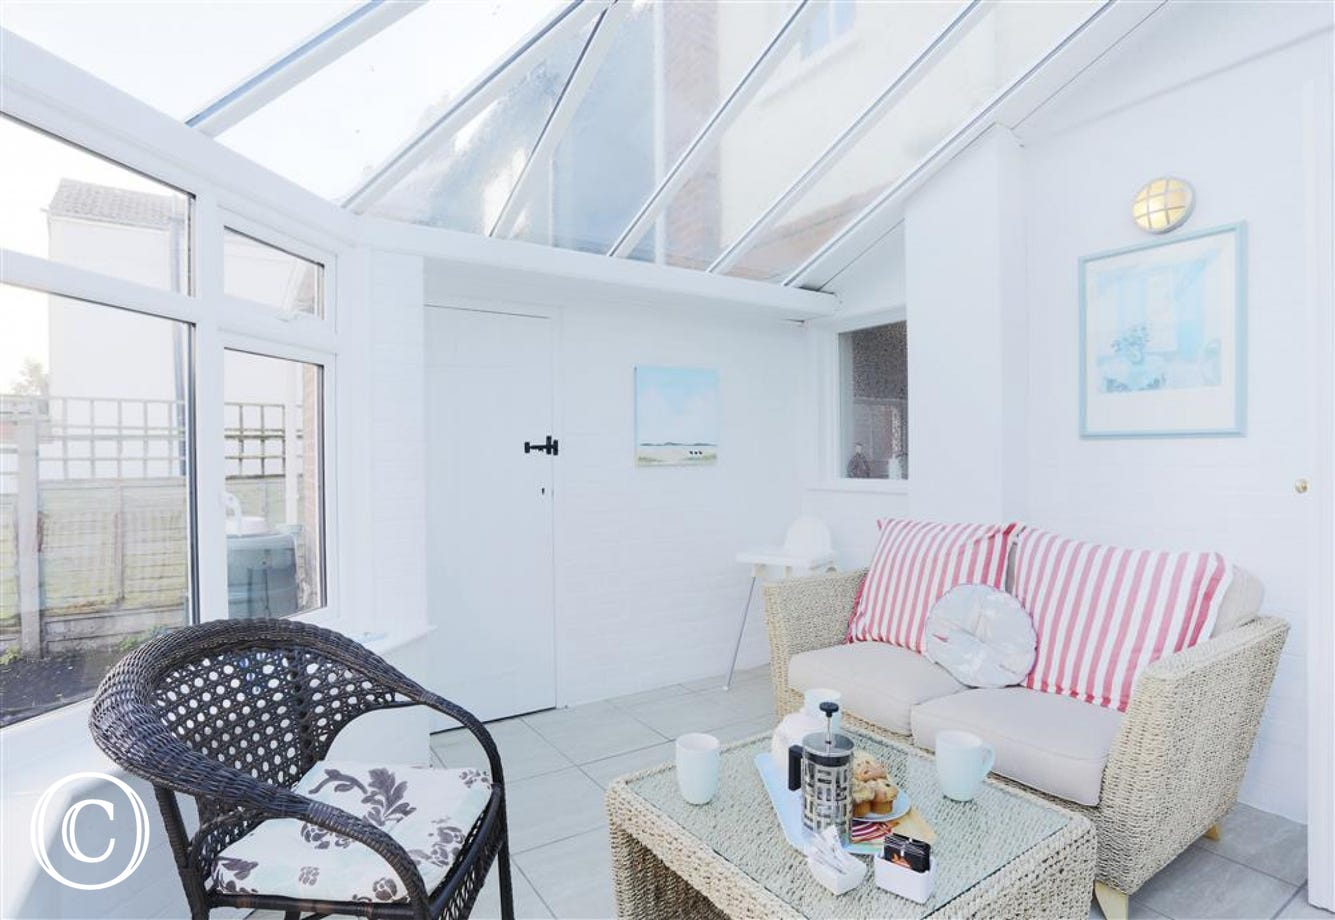 This bright and roomy conservatory is a great alternative as somewhere for you to dine or relax in.